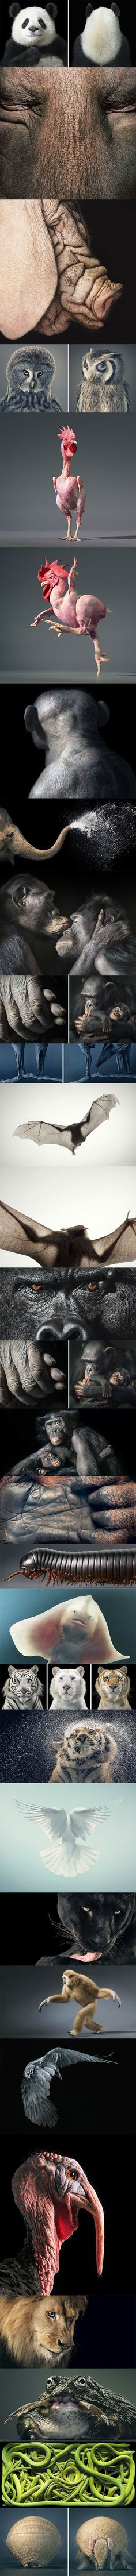 Photography by Tim Flach.